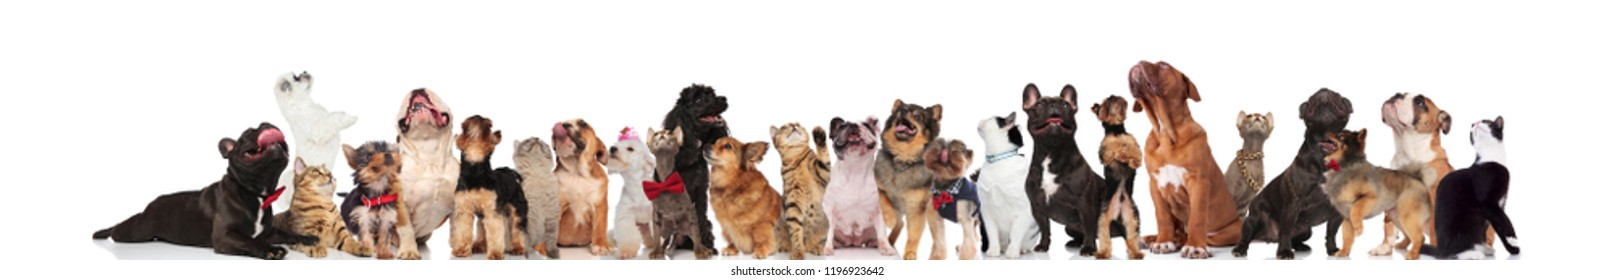 large team of cute cats and dogs looking up while standing and sitting on white background, wearing red bowties and colorful collars